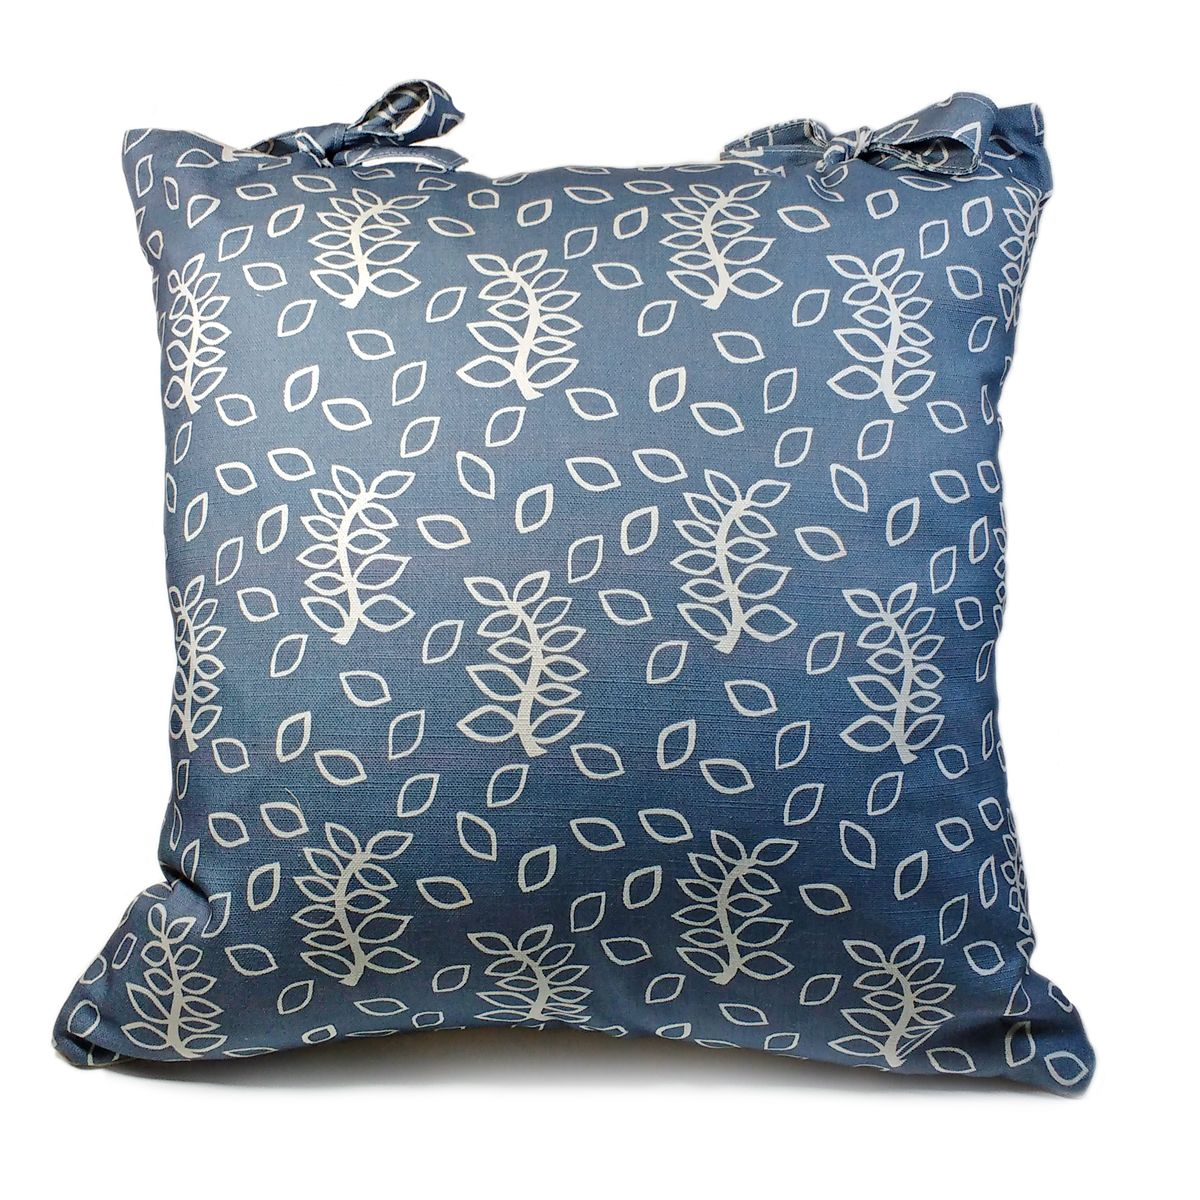 Blue leaves country inspired handmade cushion